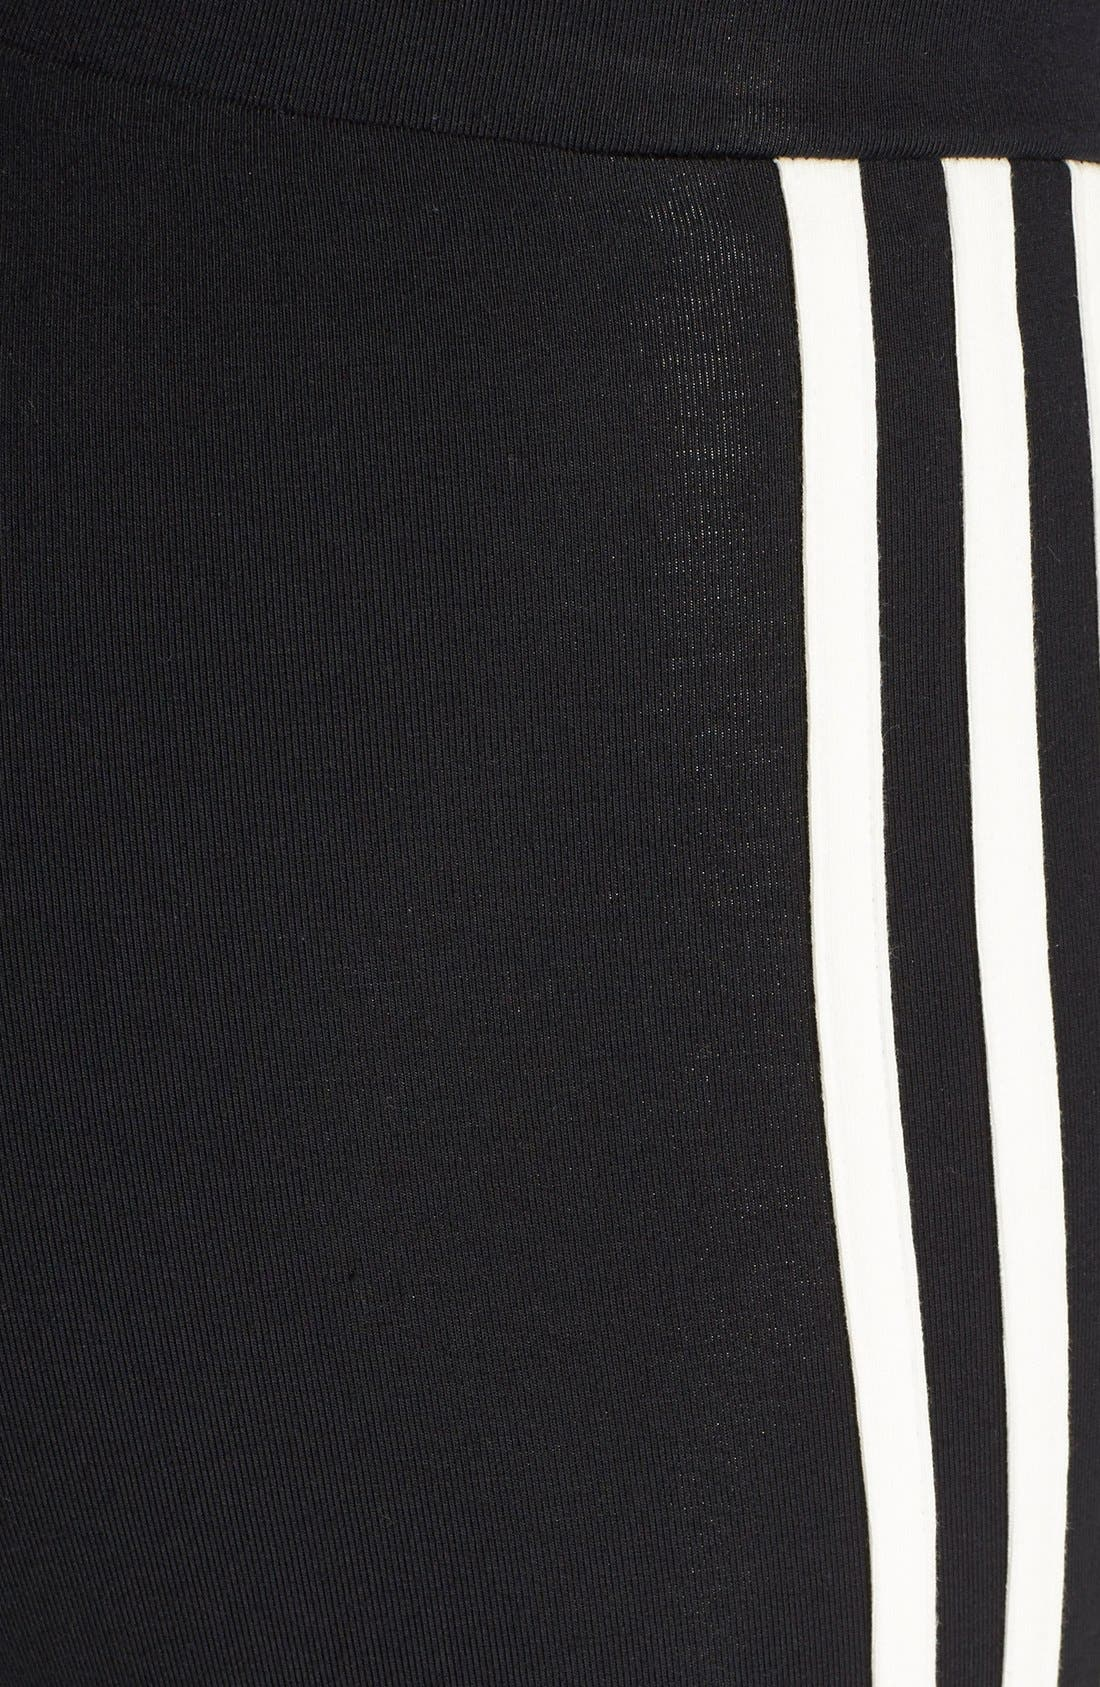 Alternate Image 4  - adidas Originals '3-Stripes' Stretch Cotton Leggings